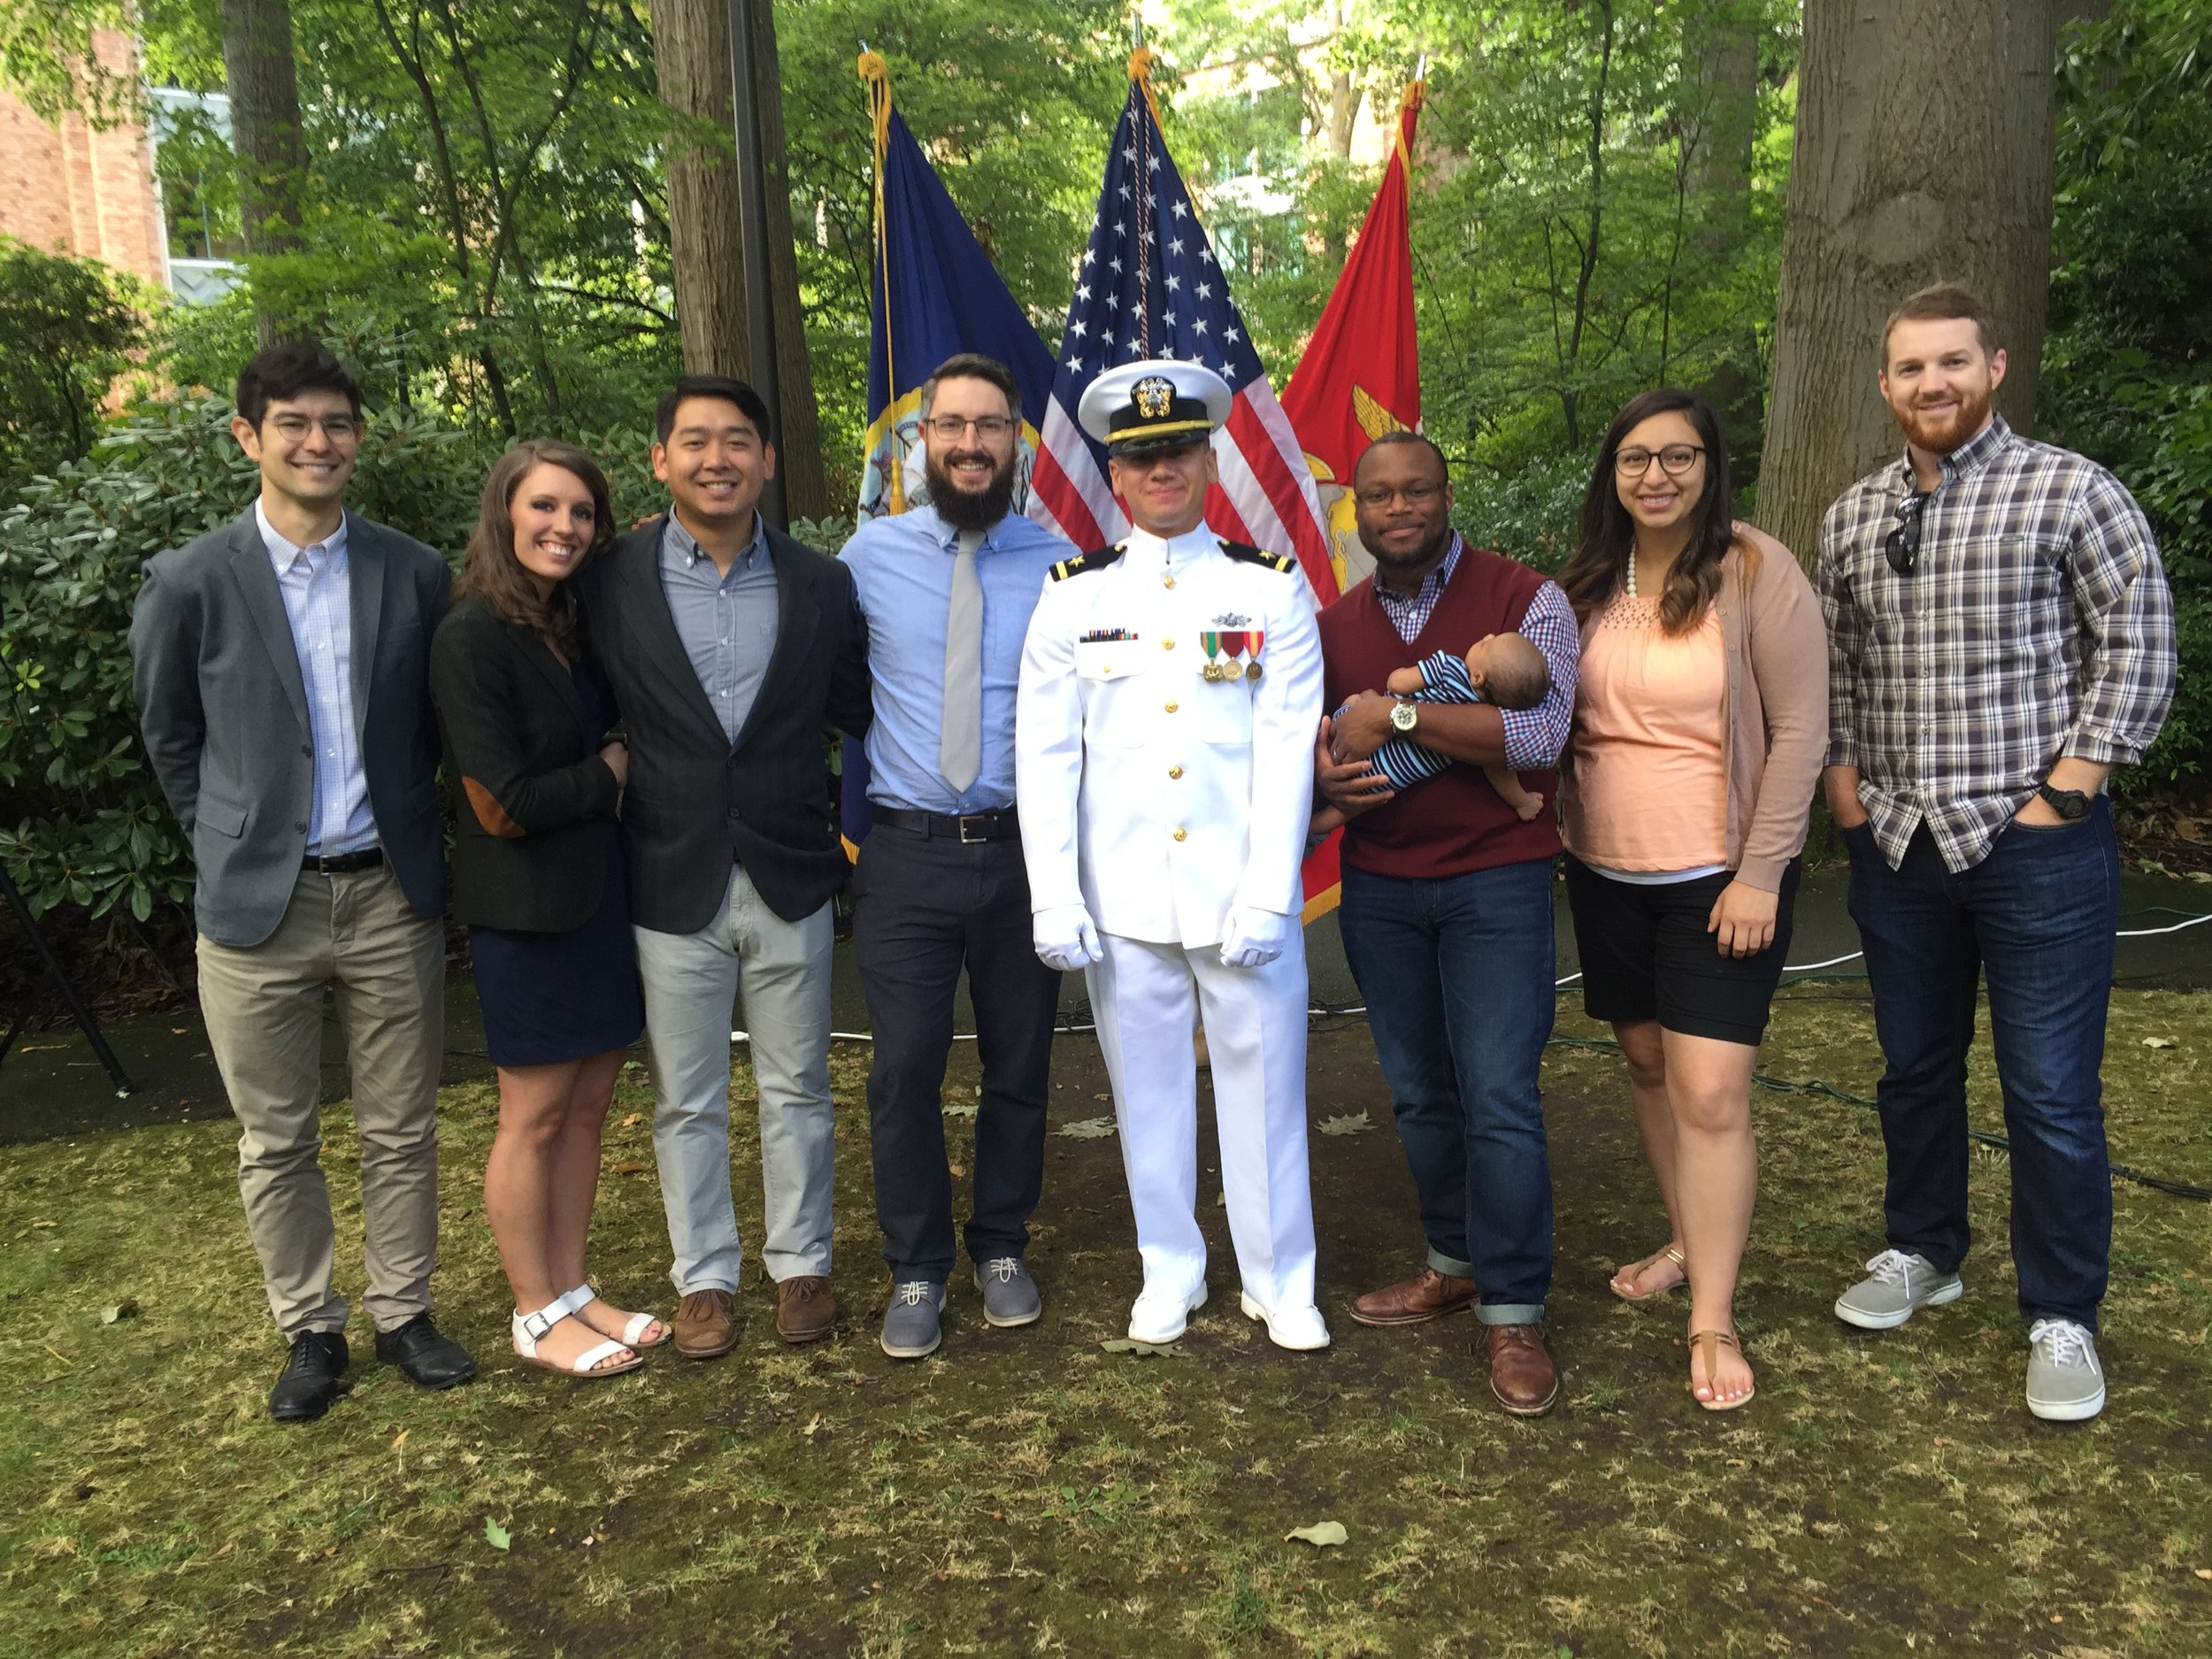 Pictured Above: Some of Ensign Spencer Vance's Hallows Church family rallying around him at his UW Naval ROTC Summer 2016 Commissioning Ceremony.